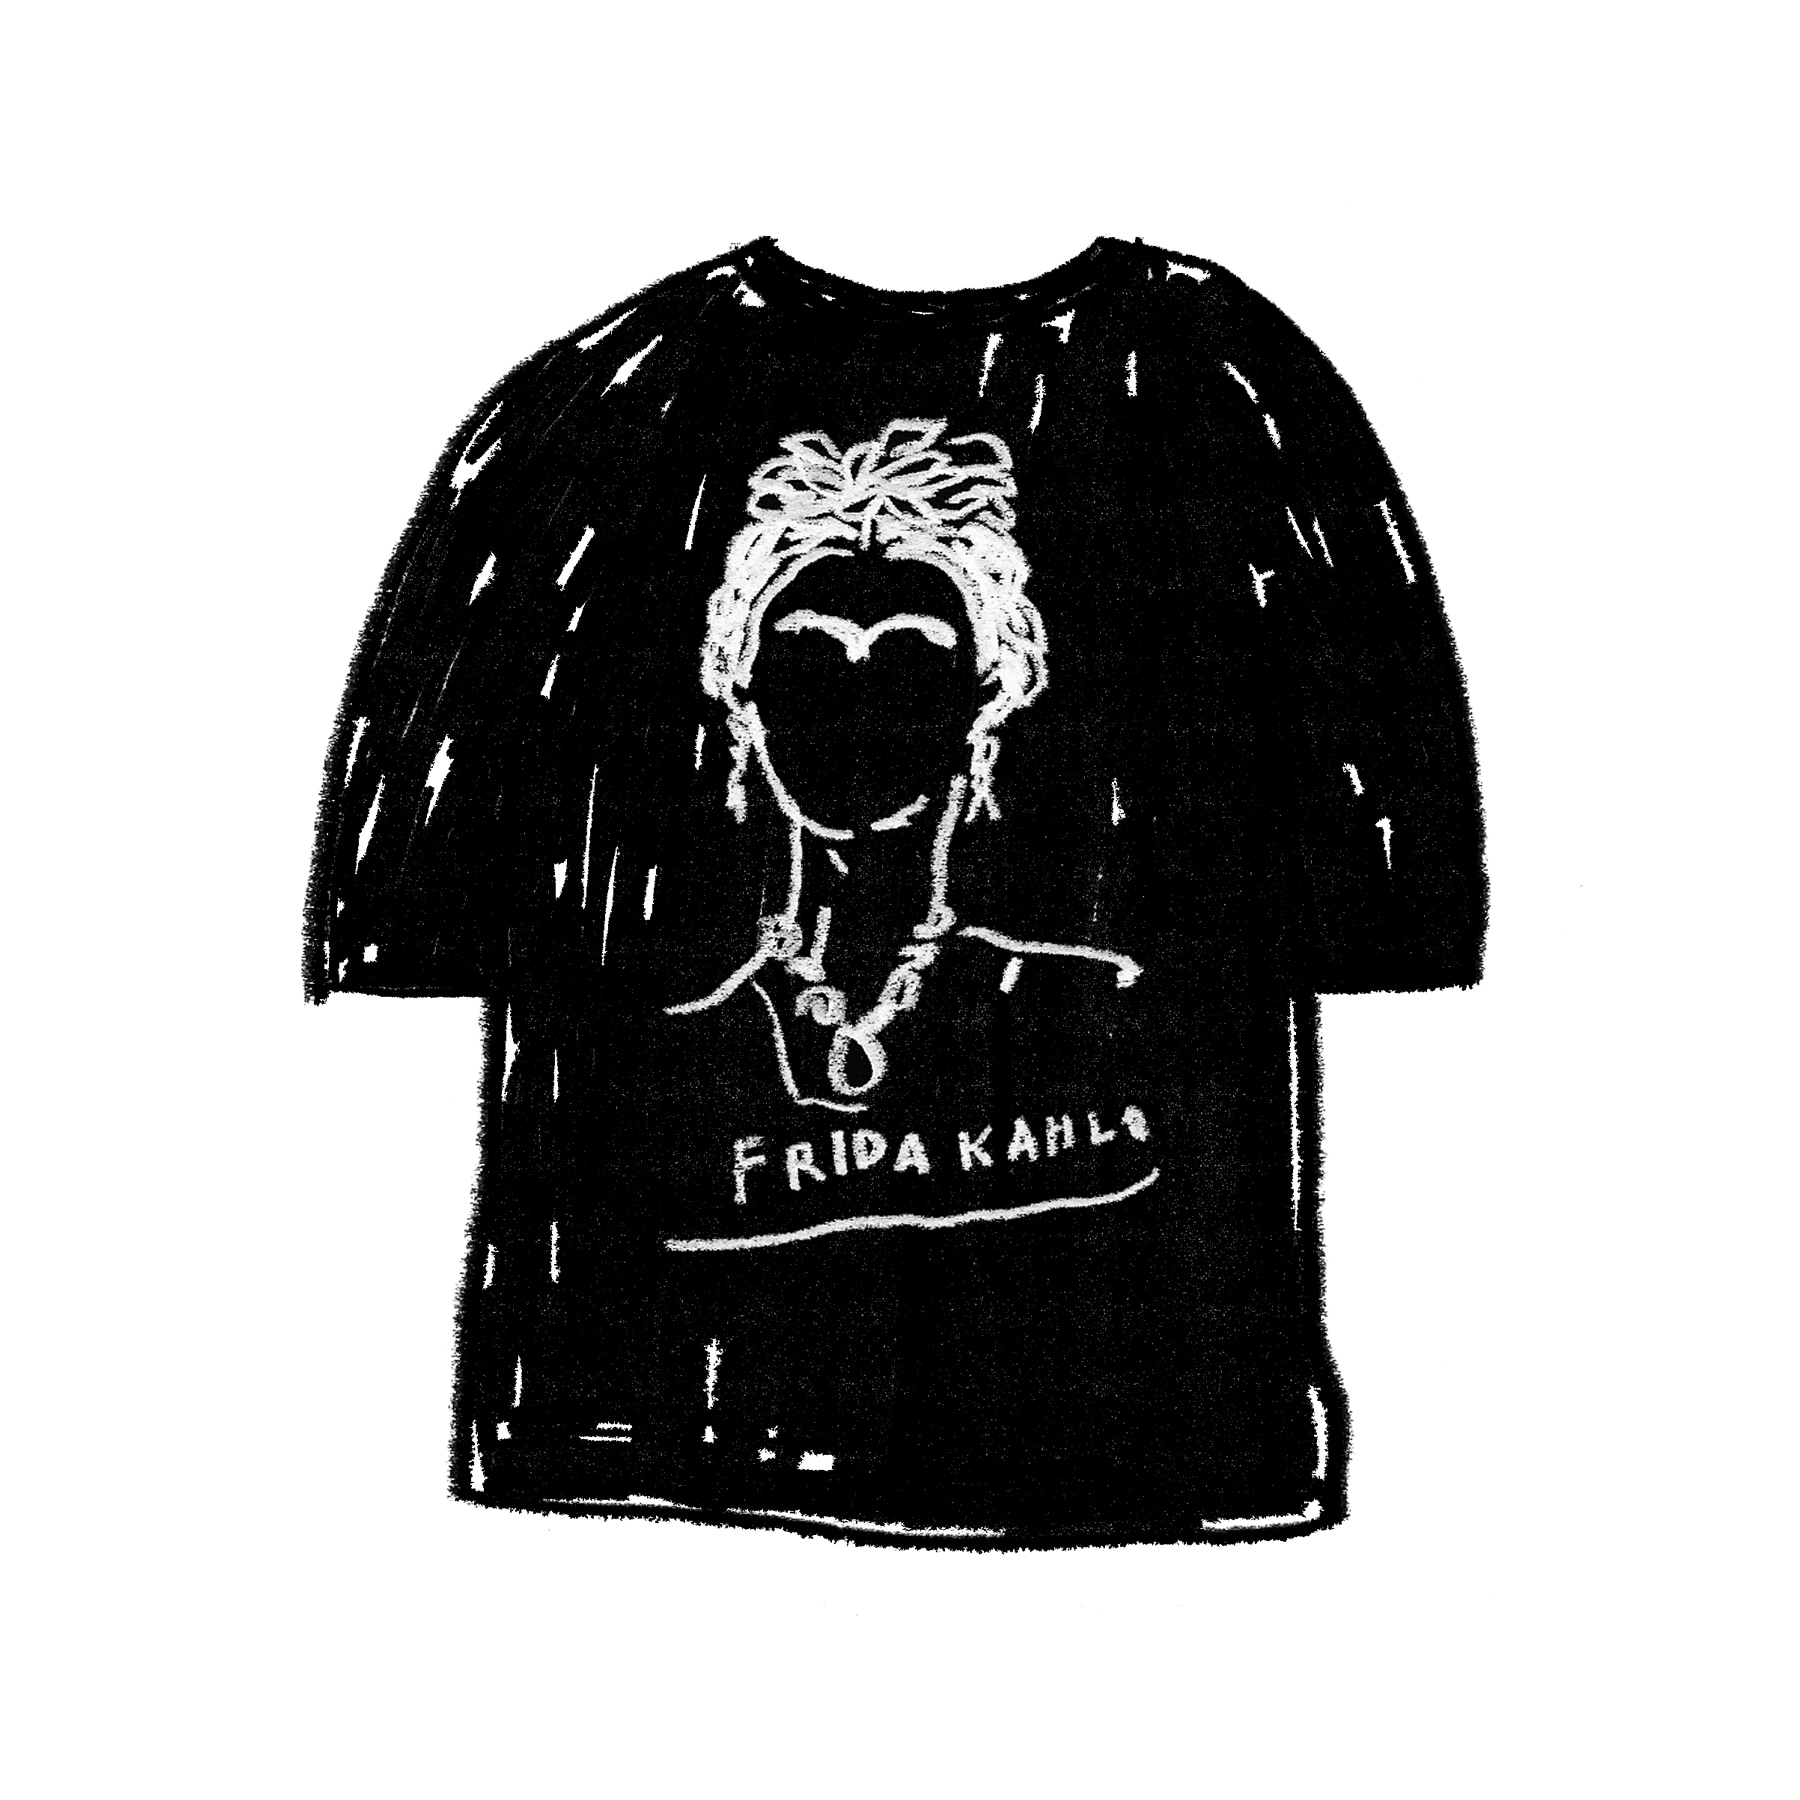 FRIDA KAHLO 1/2 T-SHIRT BLACK